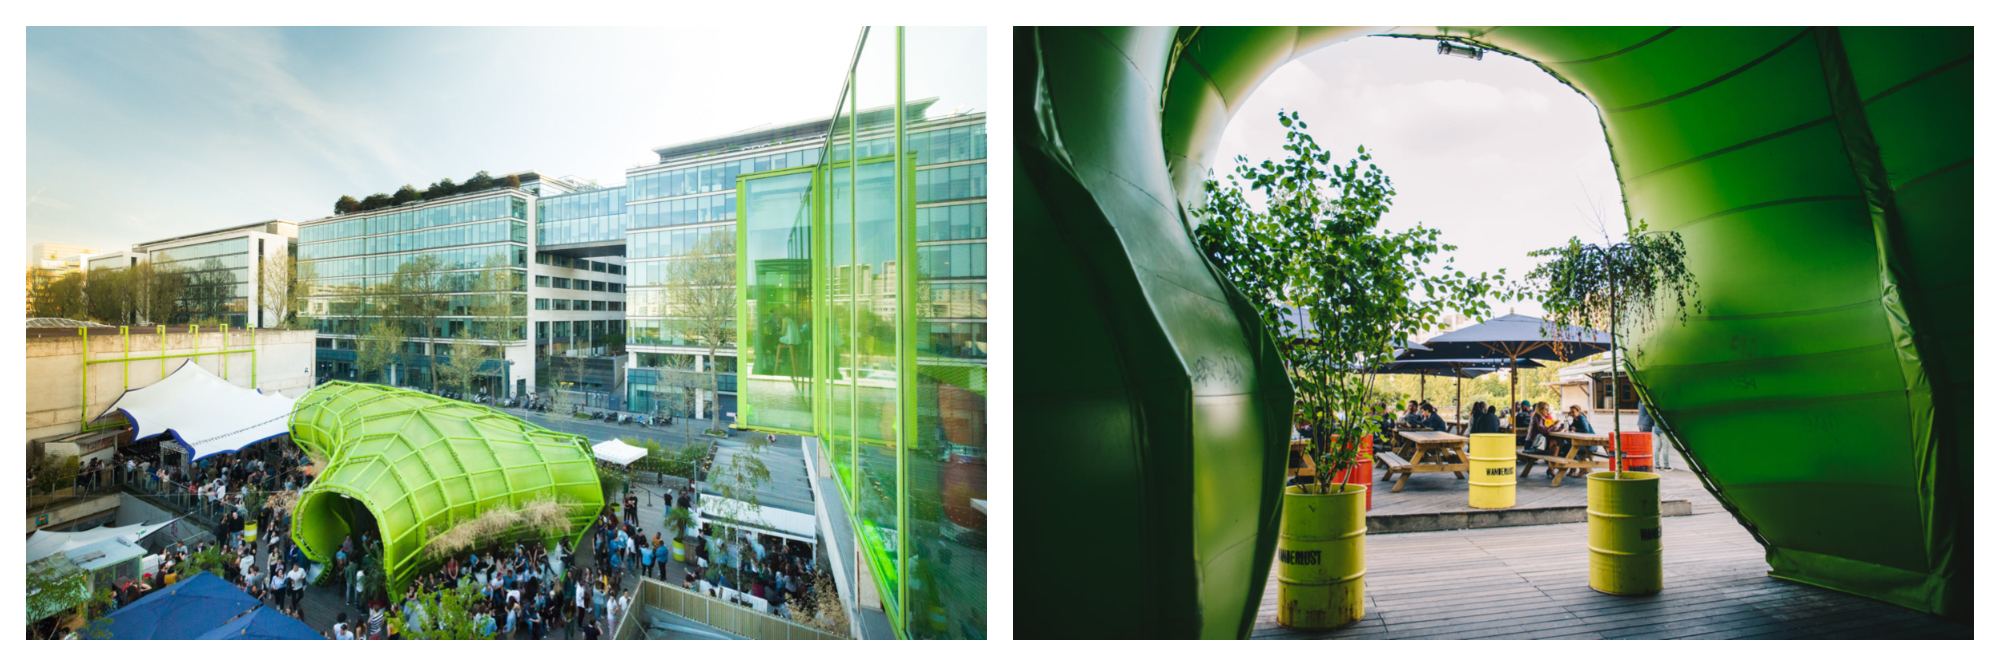 Modern glass buildings and a bright green structure outside on a terrace with people standing (left). Looking through the doorway of a bright green structure with two pot plants either side to a terrace with people sitting down at tables with umbrellas (right).